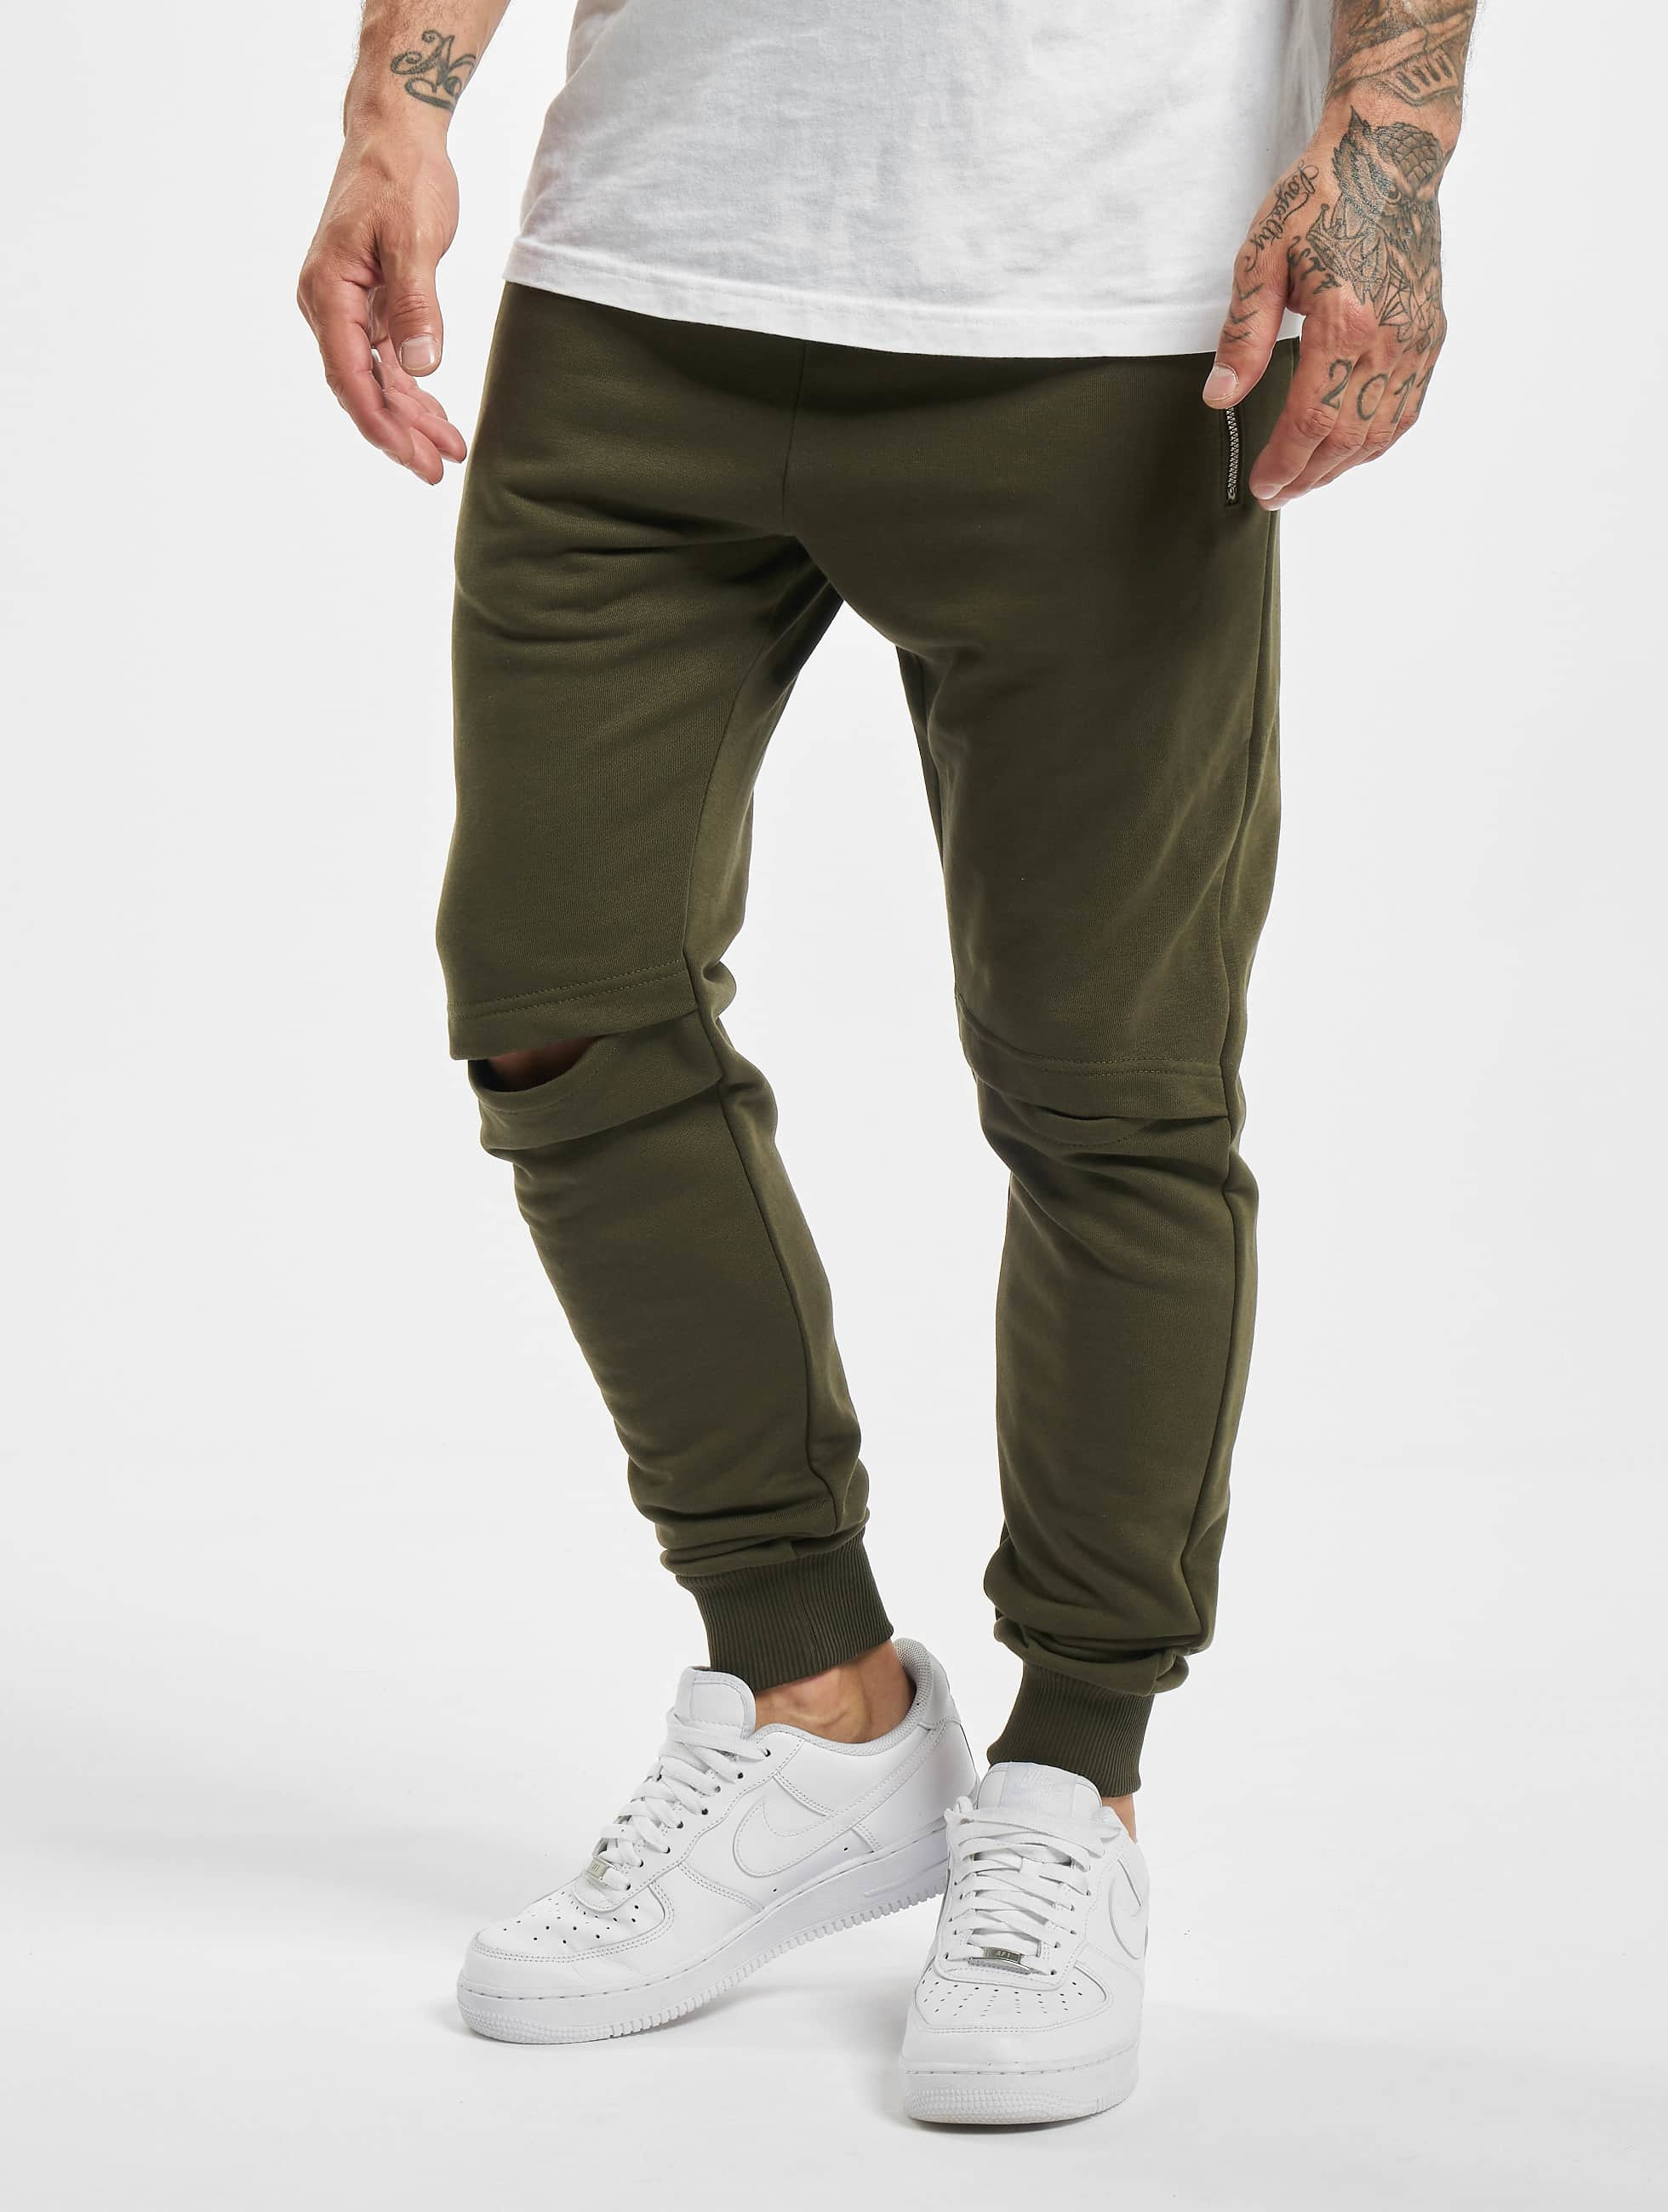 DEF / Sweat Pant Rider in olive XL